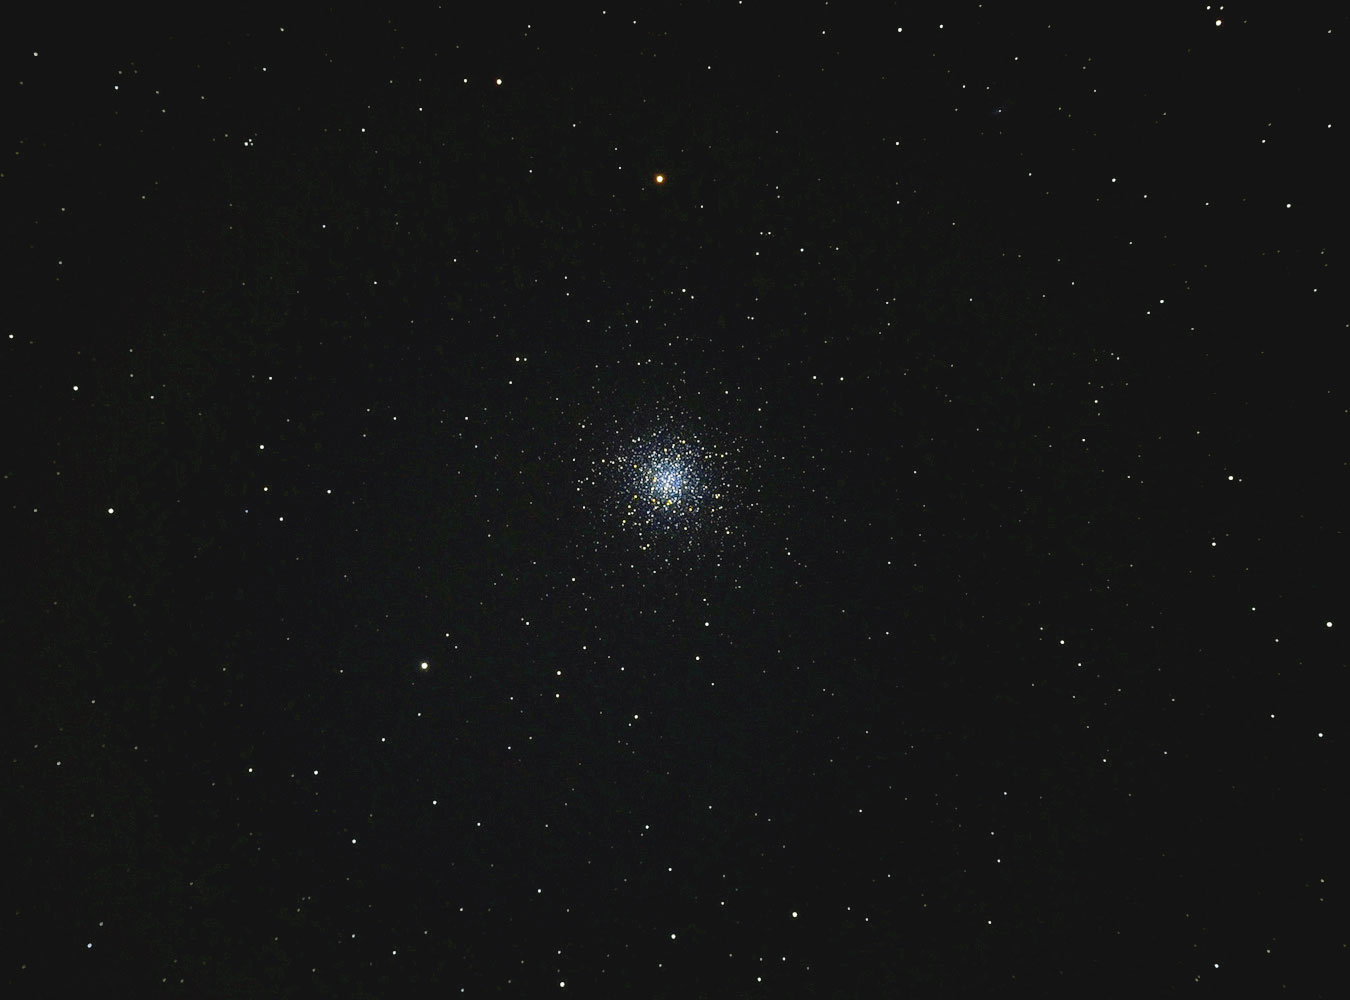 m13-dss-media-reg-ps-crop-r.jpg